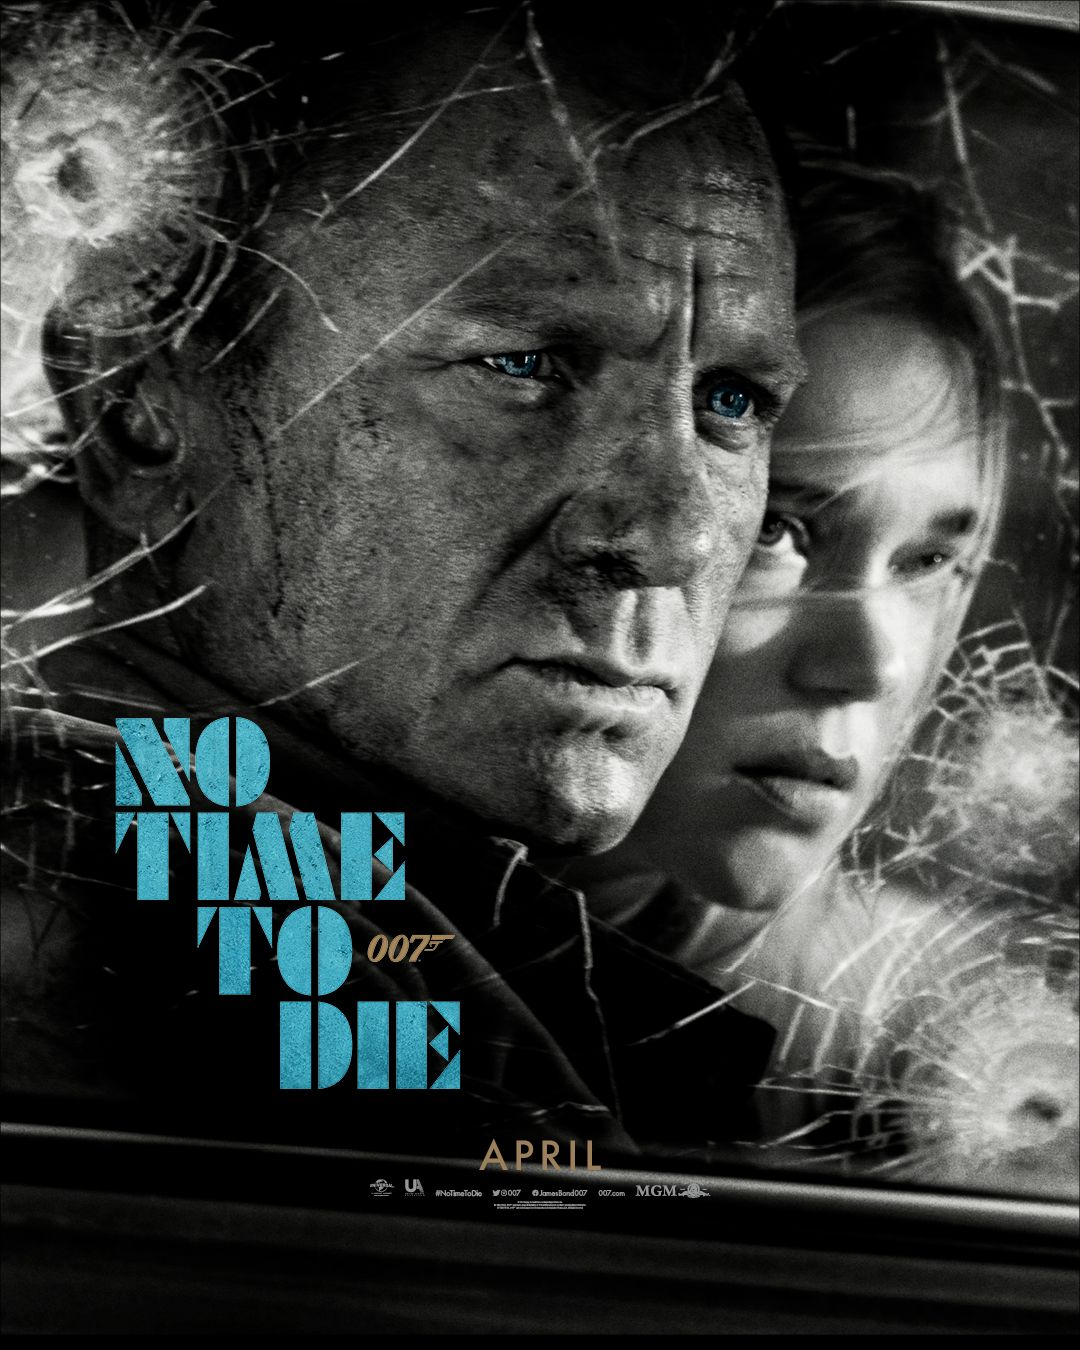 No Time To Die Official Poster In 2020 With Images James Bond